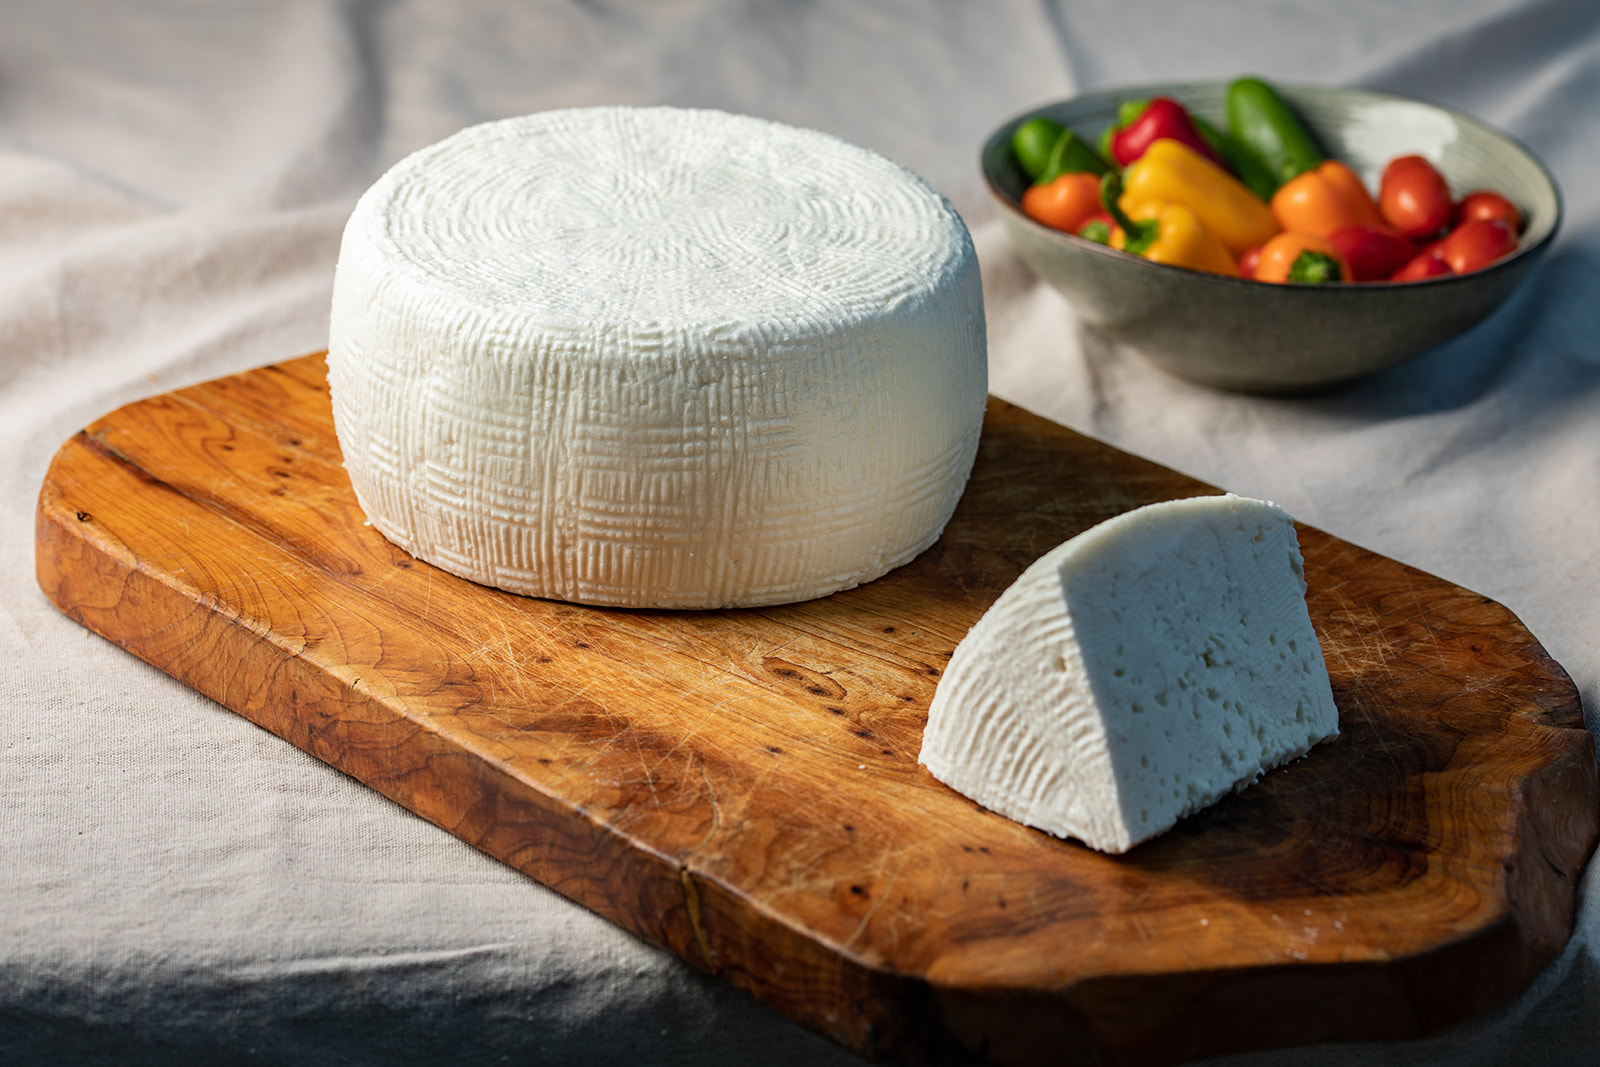 Sheep's Milk Salted Tzfat Cheese